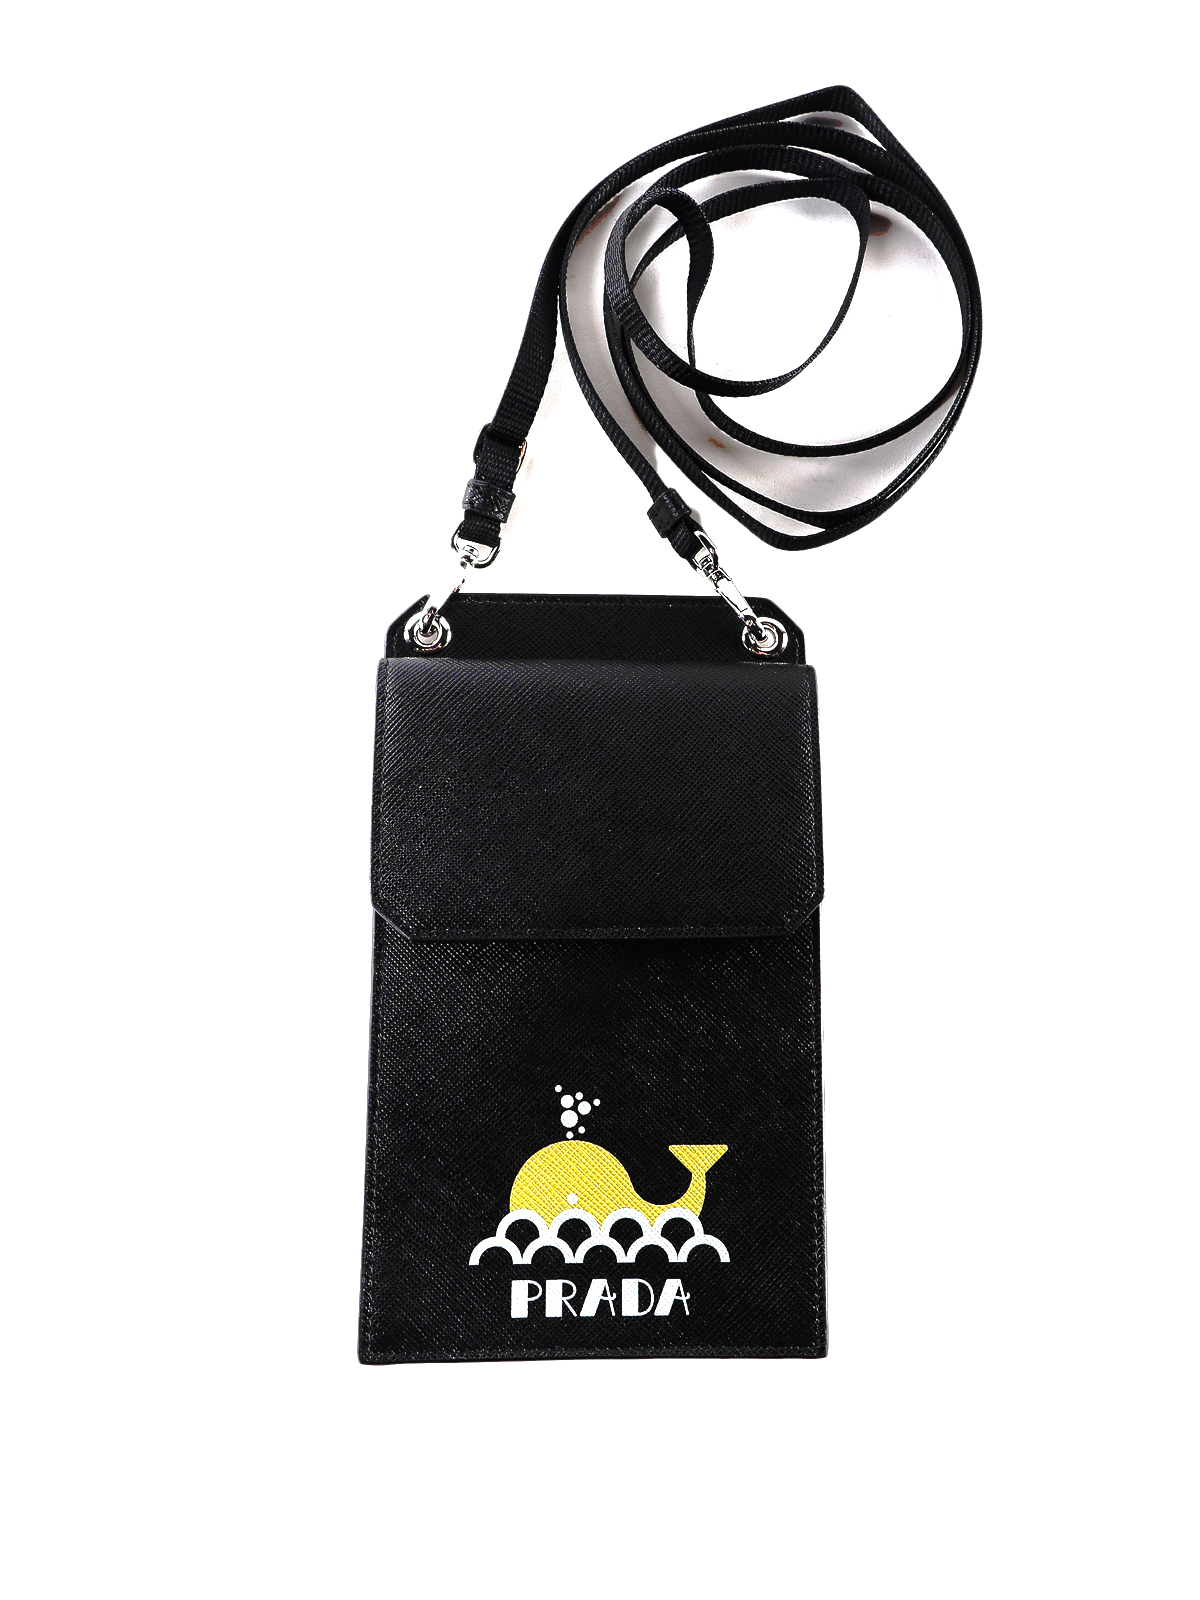 85bd9863ea07 Prada - Saffiano leather smartphone case - Cases & Covers ...